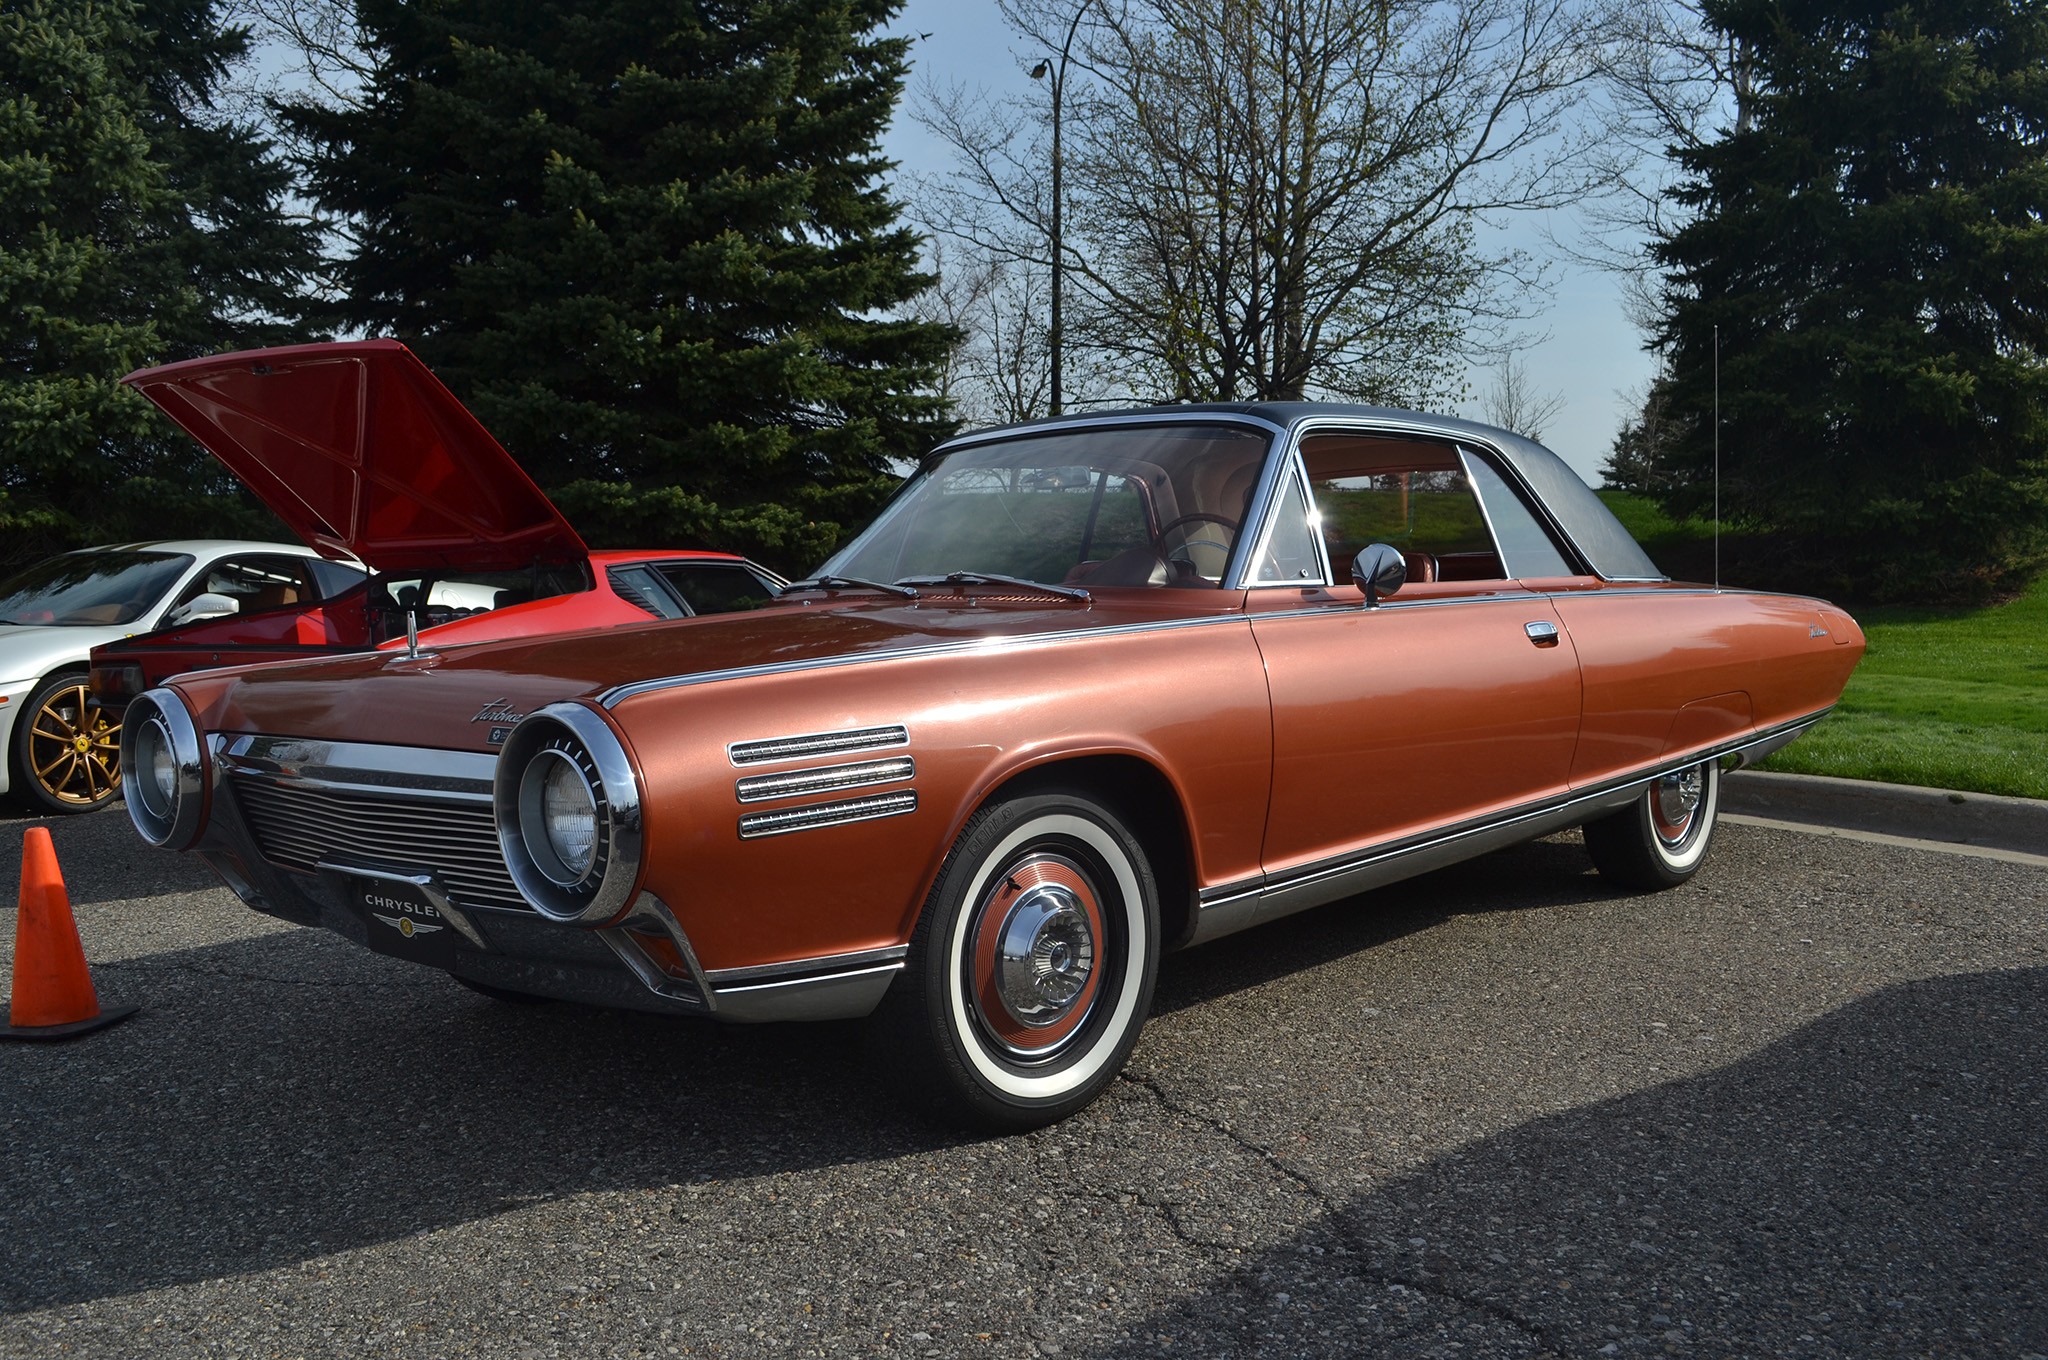 Chrysler Turbine Car: Our 10 Favorite Cars At The First FCA Cars And Coffee